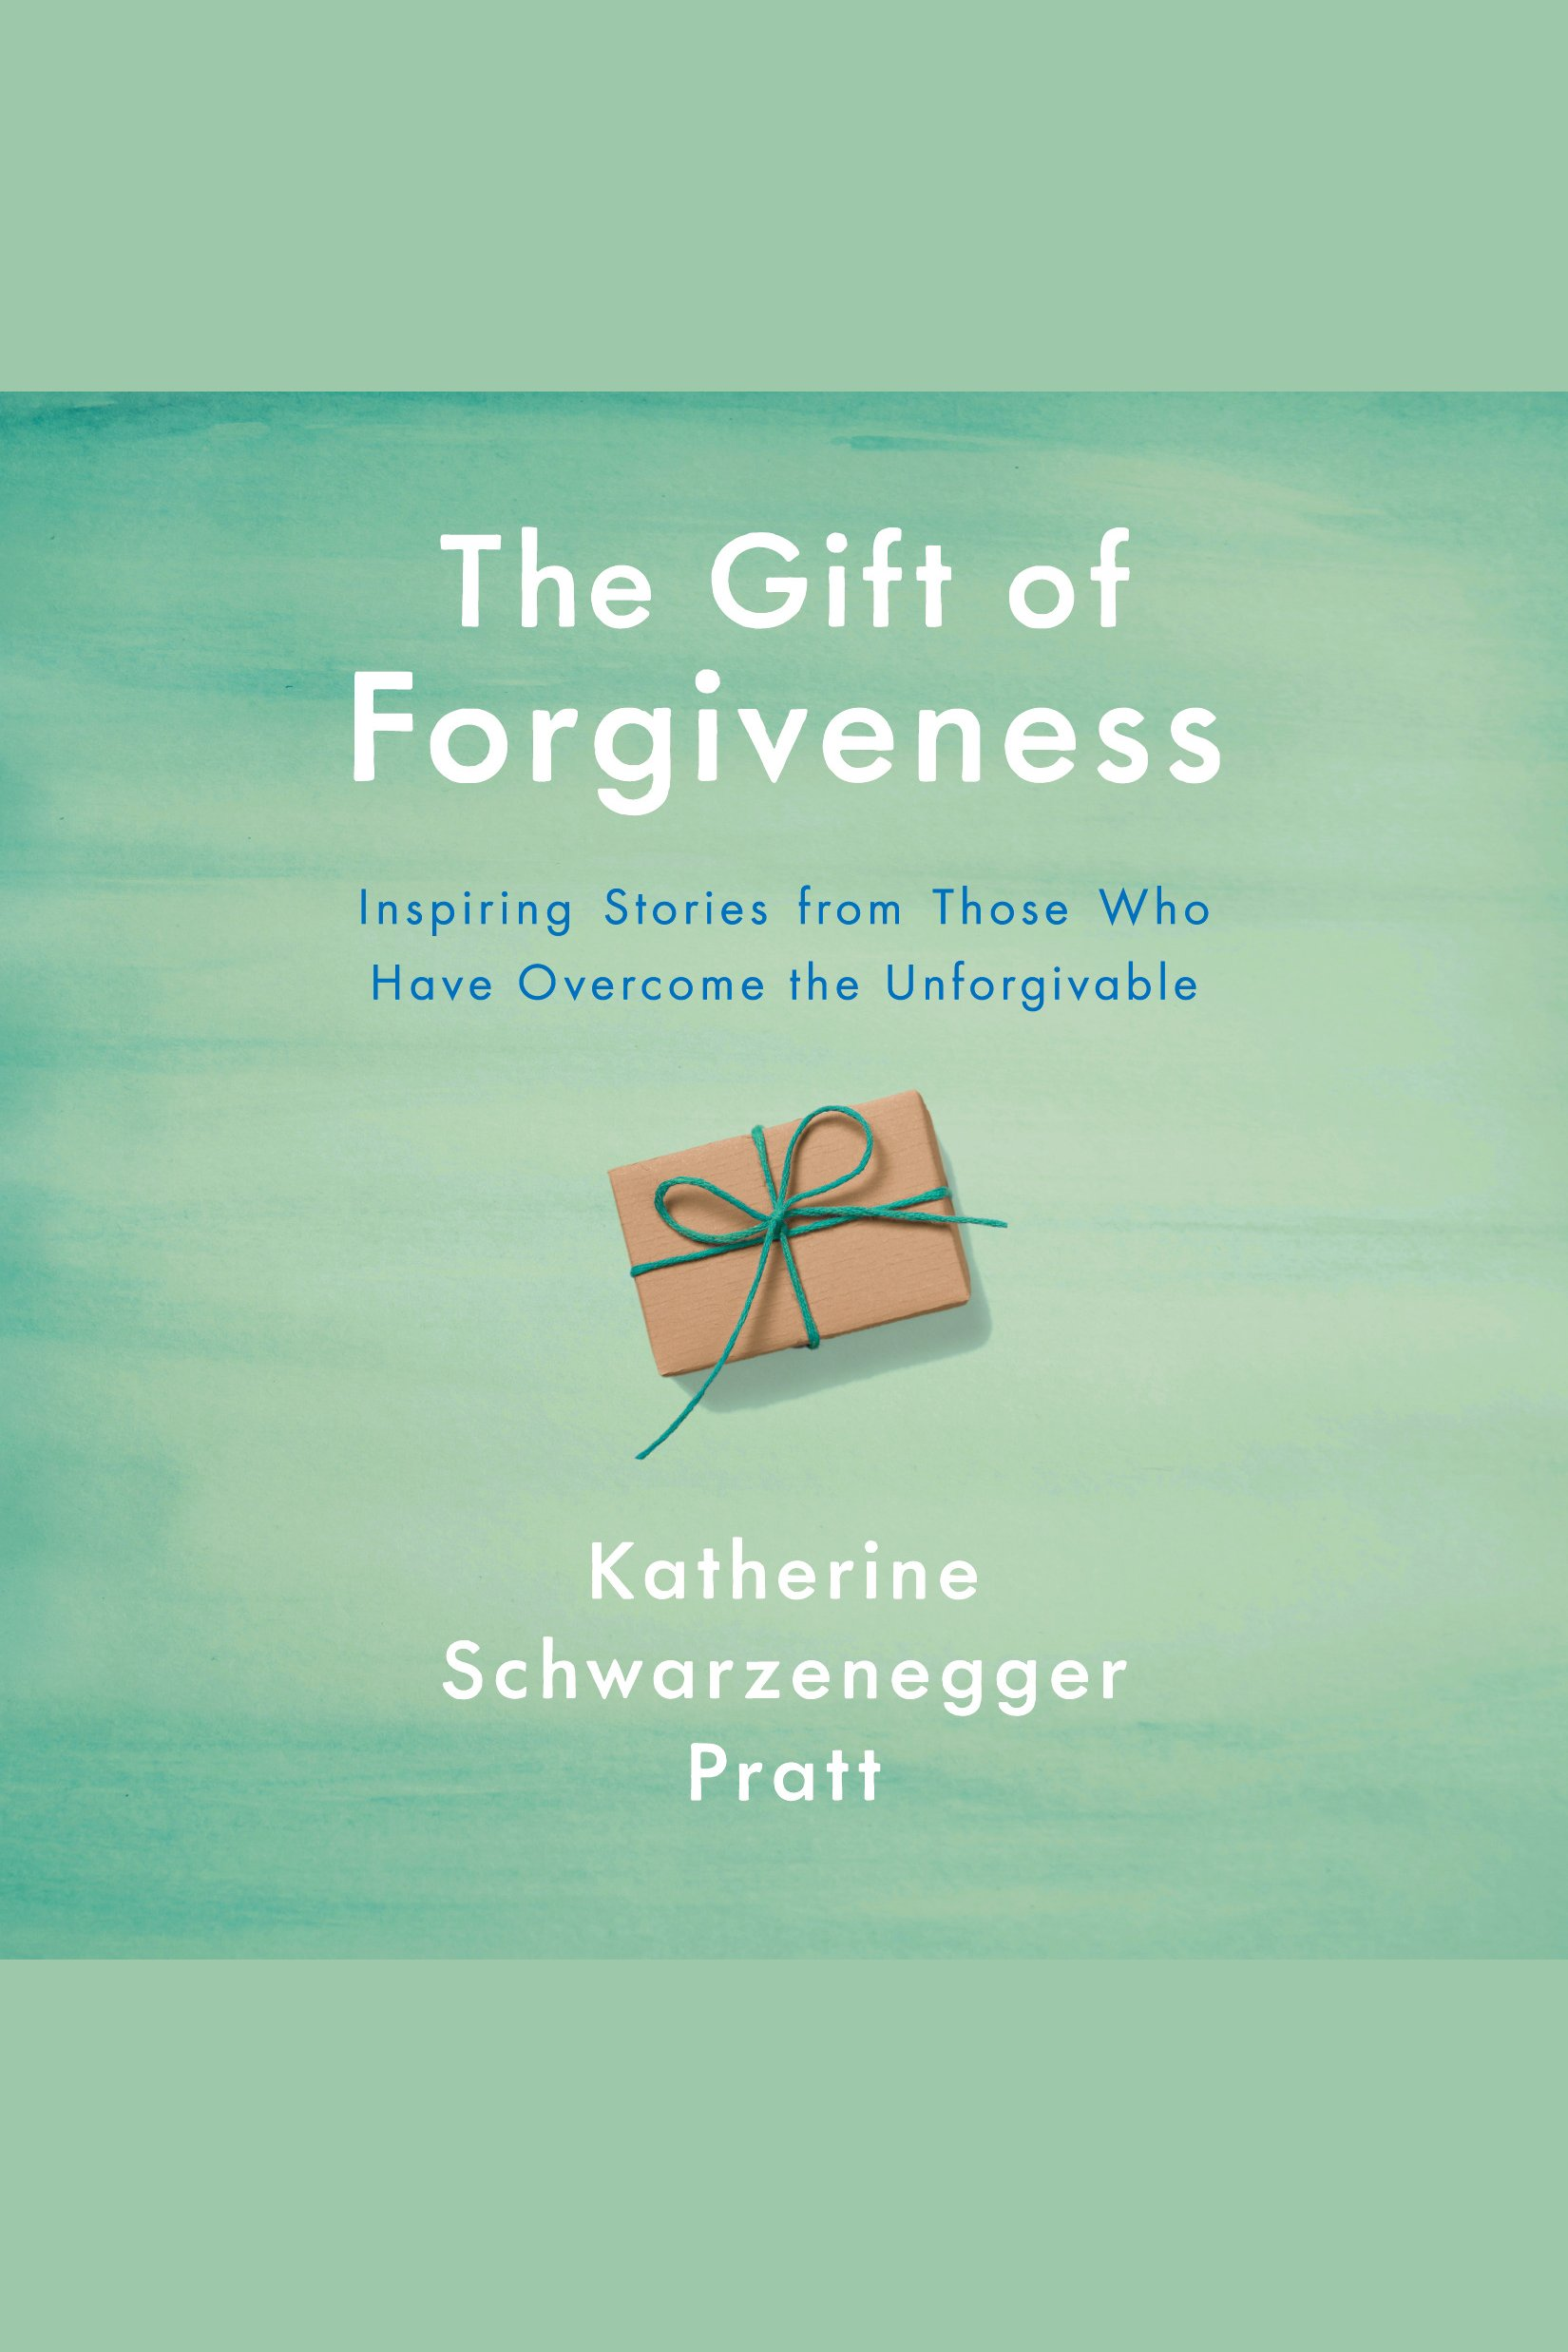 Gift of Forgiveness, The Inspiring Stories from Those Who Have Overcome the Unforgivable